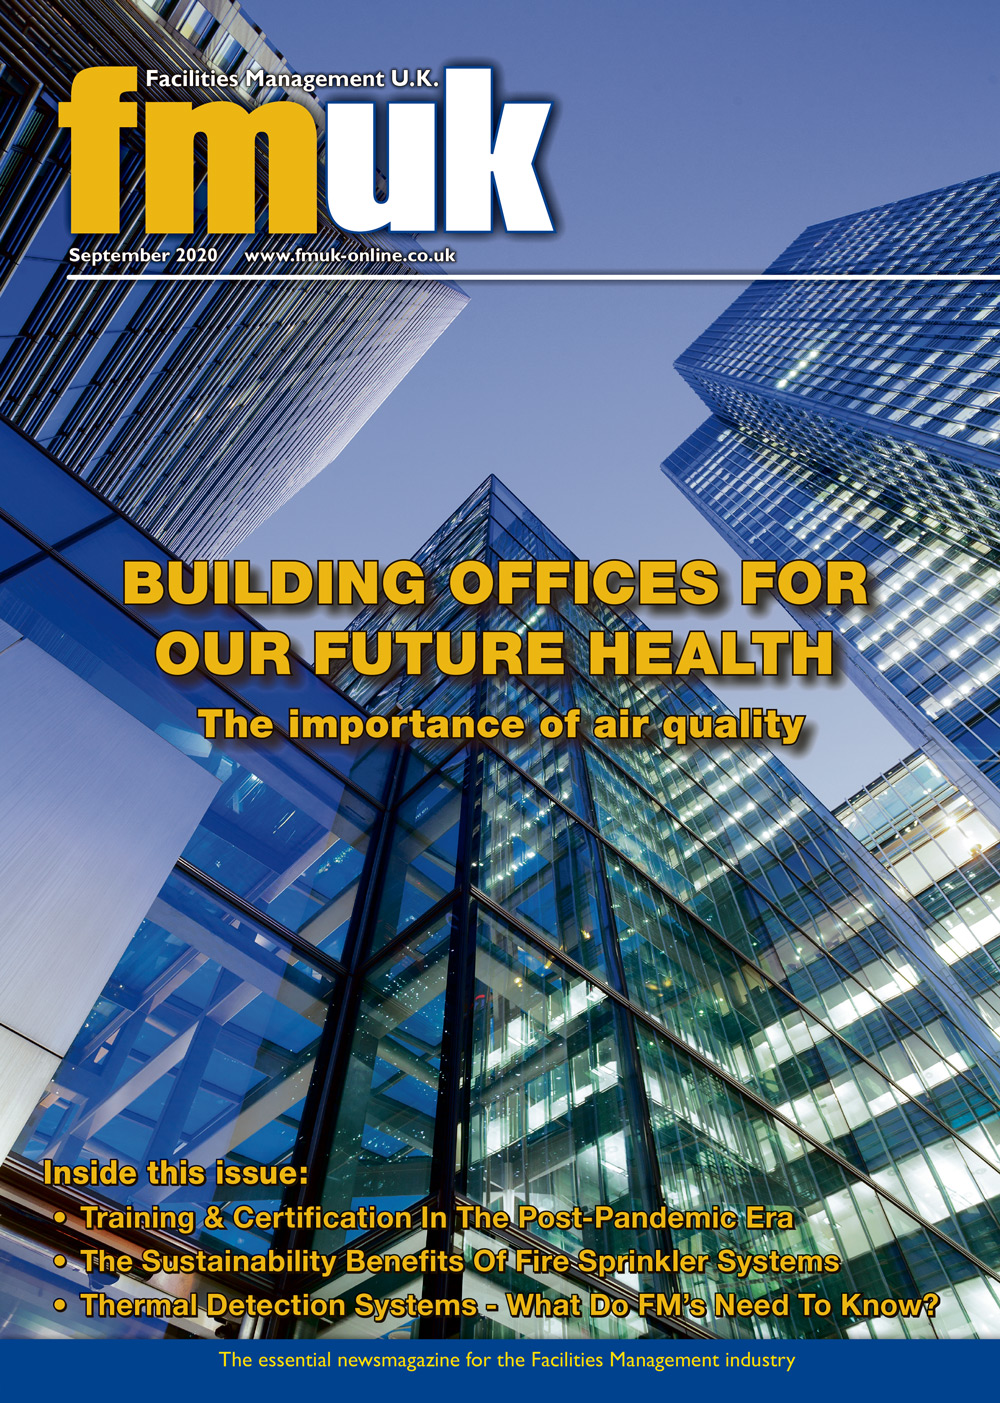 Facilities Management UK (FMUK) September 2020 issue